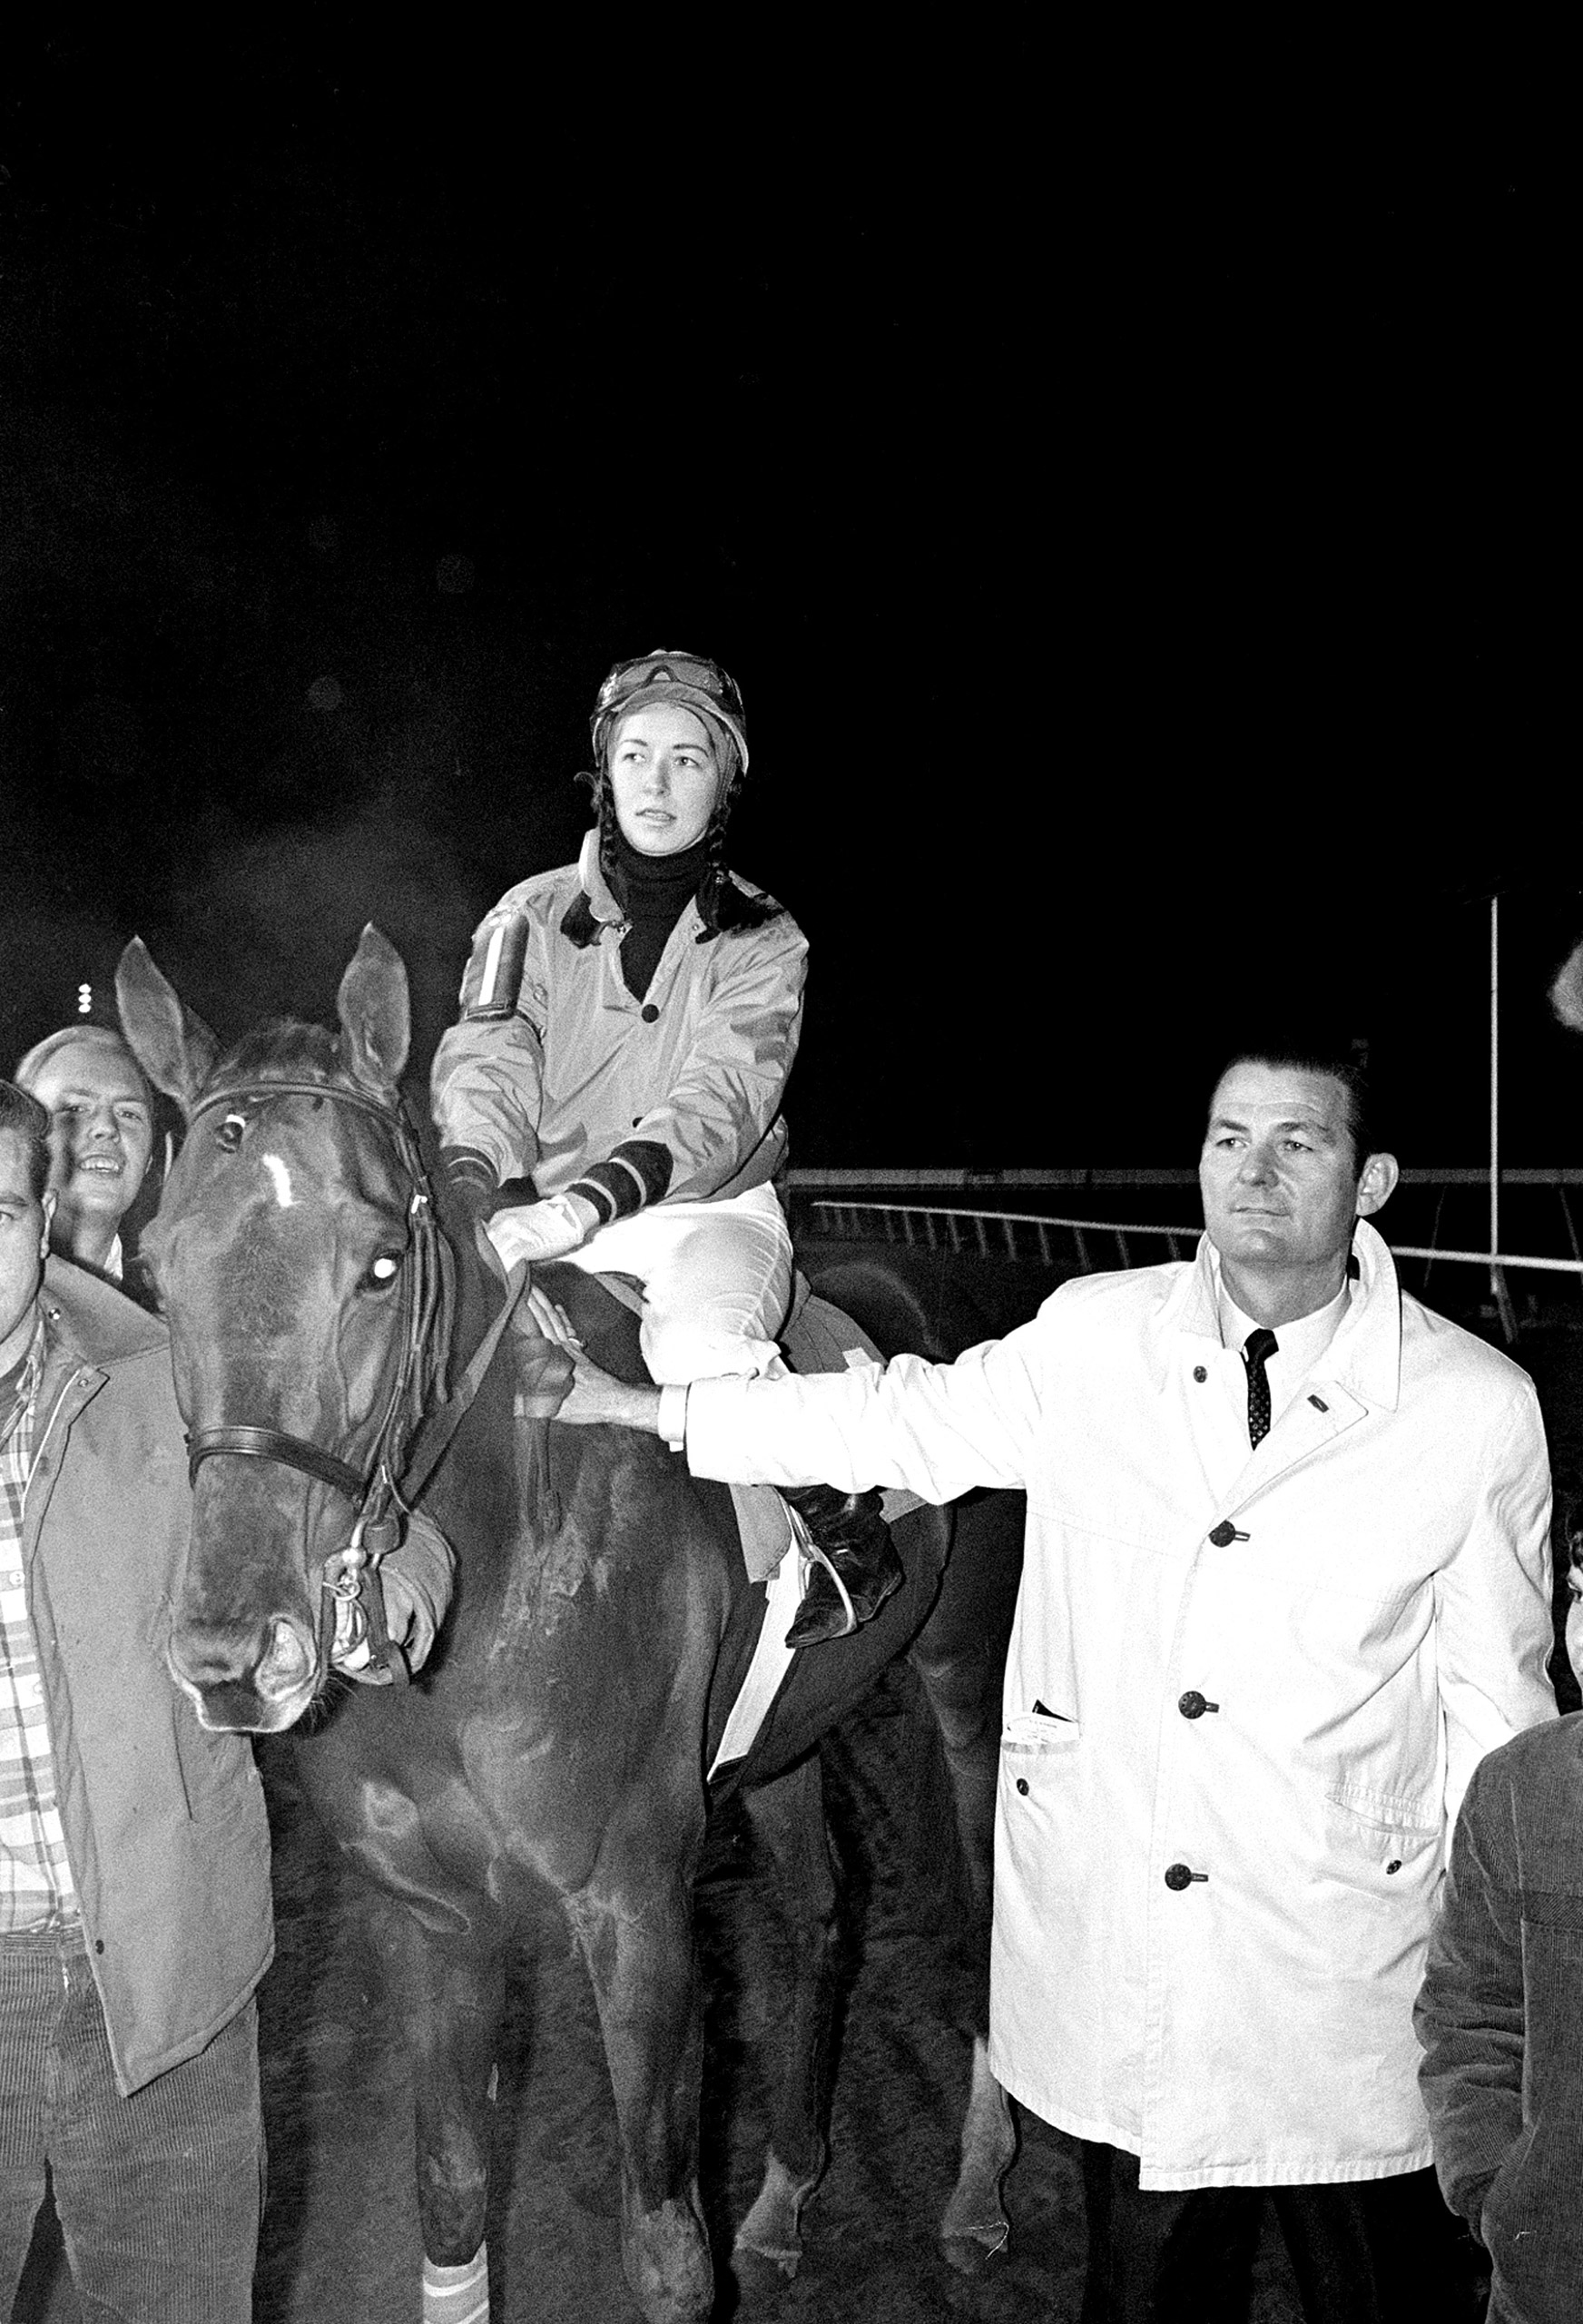 "Barbara Jo Rubin, 19-year-old veterinary student from Miami, holds the reins of her horse Cohesion, shortly after she rode him to victory at the racetrack of Charles Town, W.V., thus becoming the first female jockey to win a major pari-mutuel flat race in the United States, on Feb. 23, 1969. Later that year she became the first woman to ride in the Kentucky Derby. It wasn't an easy ride: TIME <a href=""http://time.com/vault/issue/1969-04-04/page/75/"">noted</a> that she had had her dressing-room window smashed by a rock during a jockey boycott."